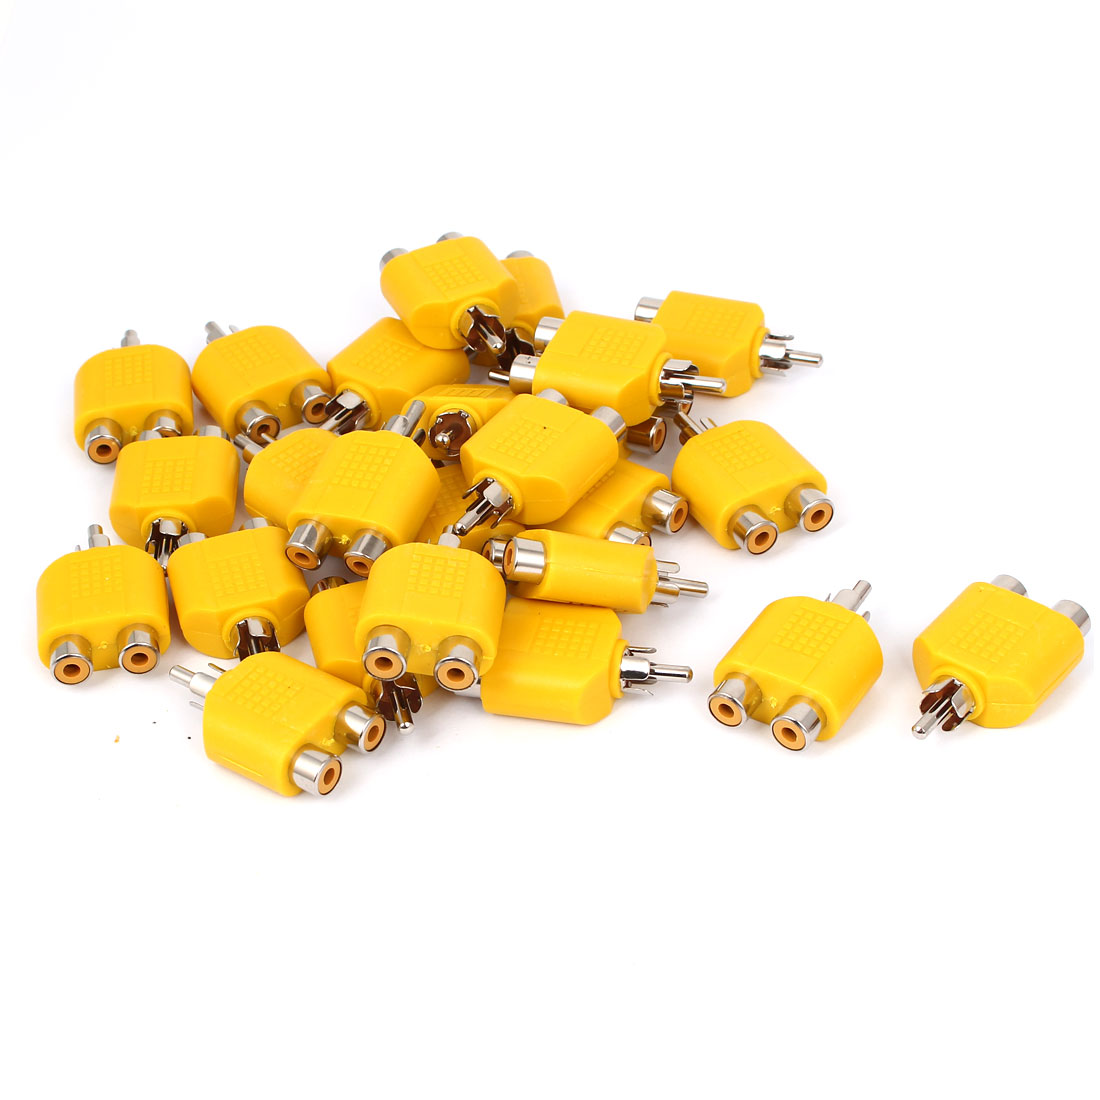 Yellow RCA Y Splitter Male to 2 Female M/F Stereo Audio Video Adaptor Connector 25pcs